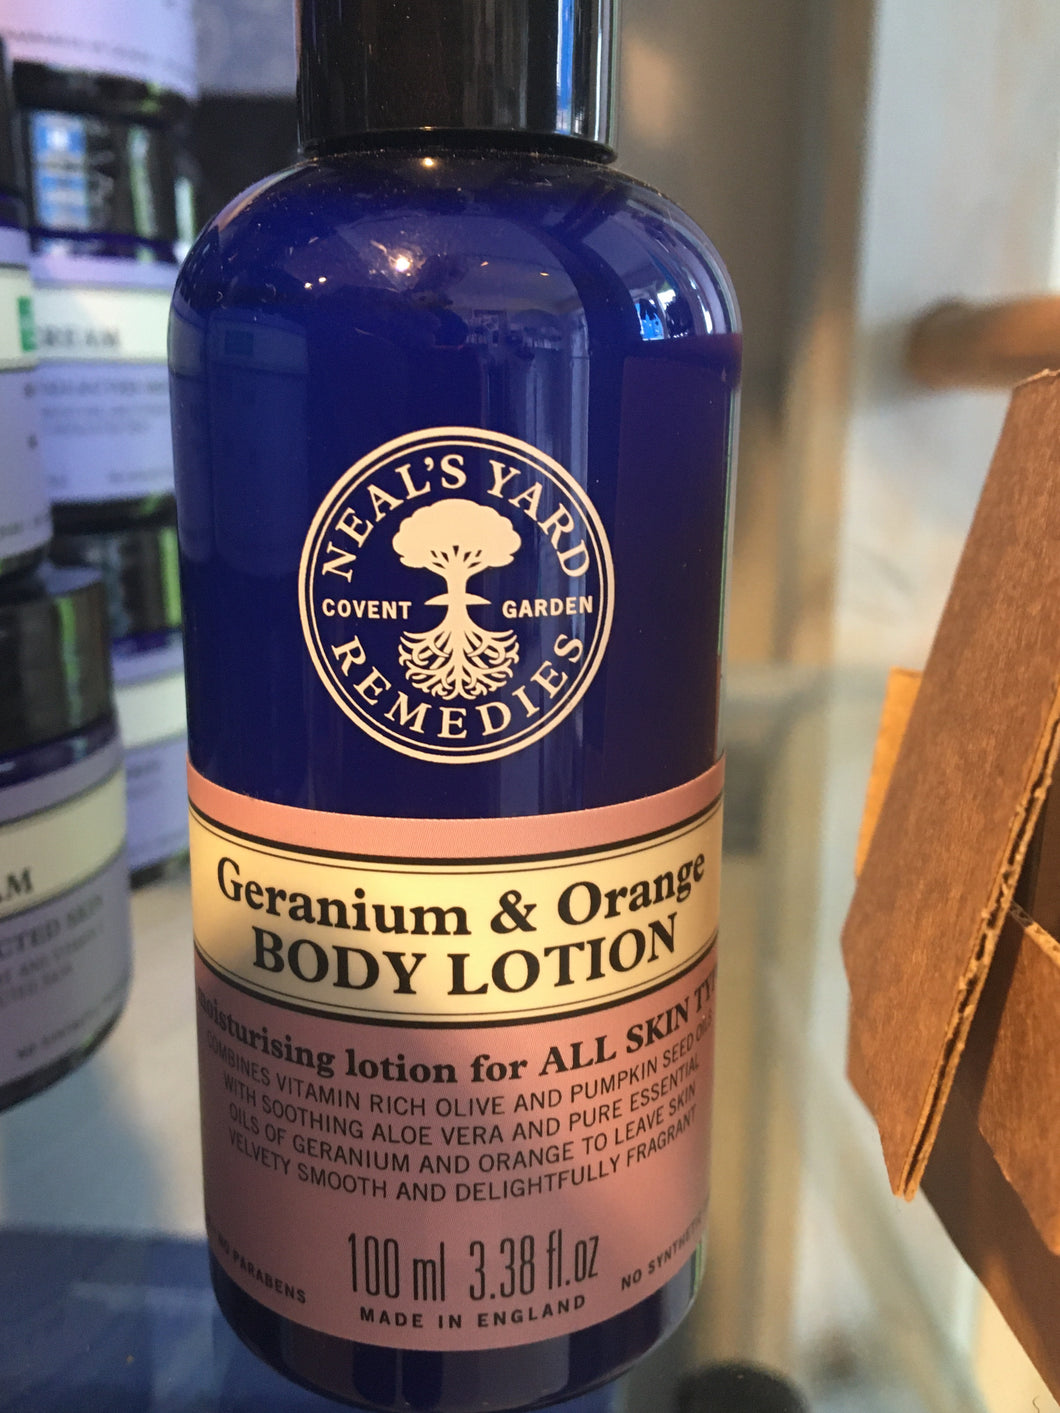 NYR Geranium & Orange Body Lotion 100ml